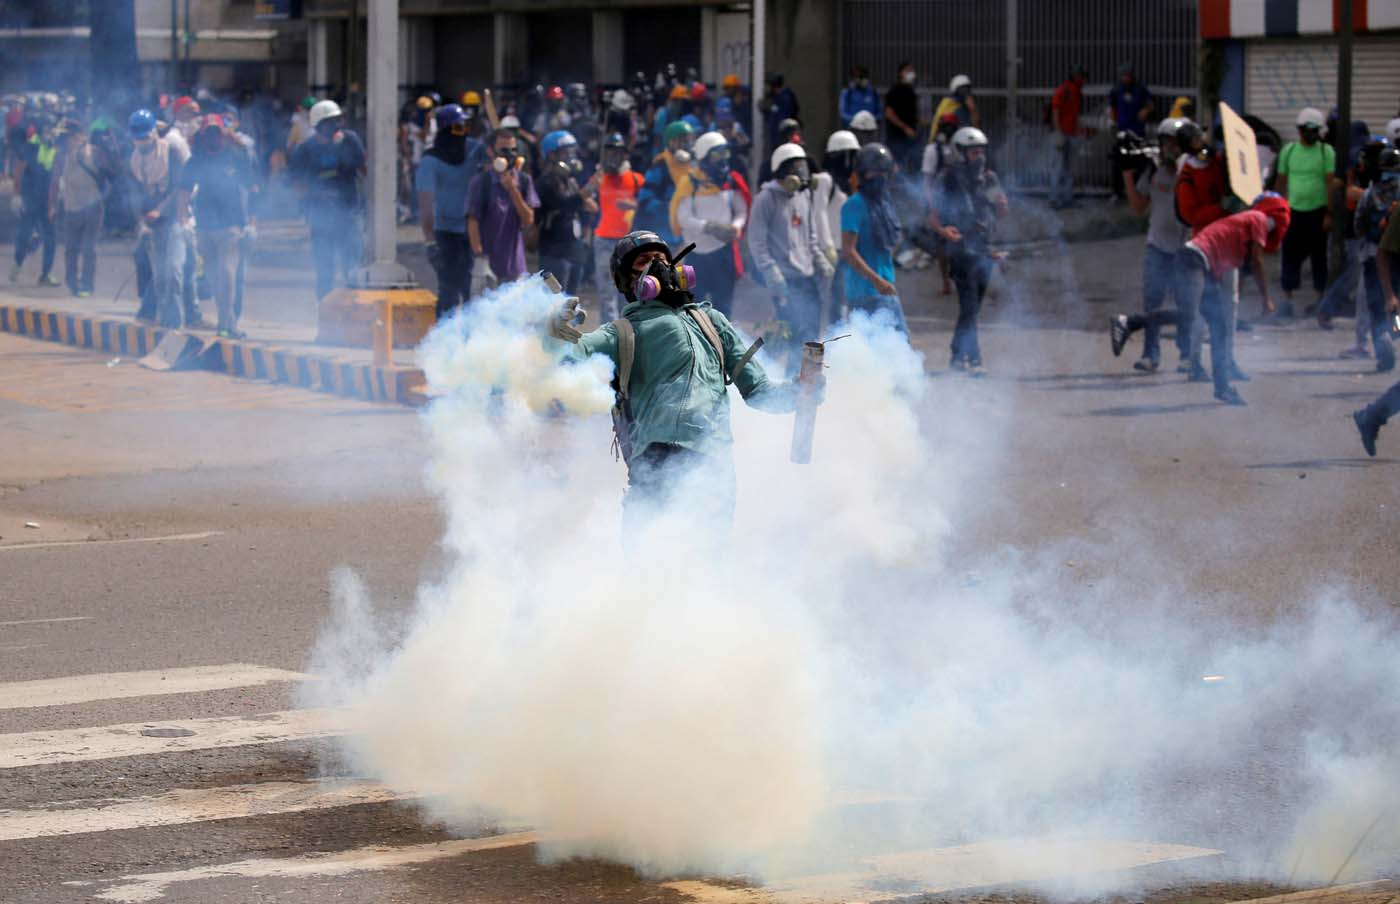 Demonstrators clash with riot security forces while rallying against President Nicolas Maduro in Caracas, Venezuela May 24, 2017. REUTERS/Carlos Barria